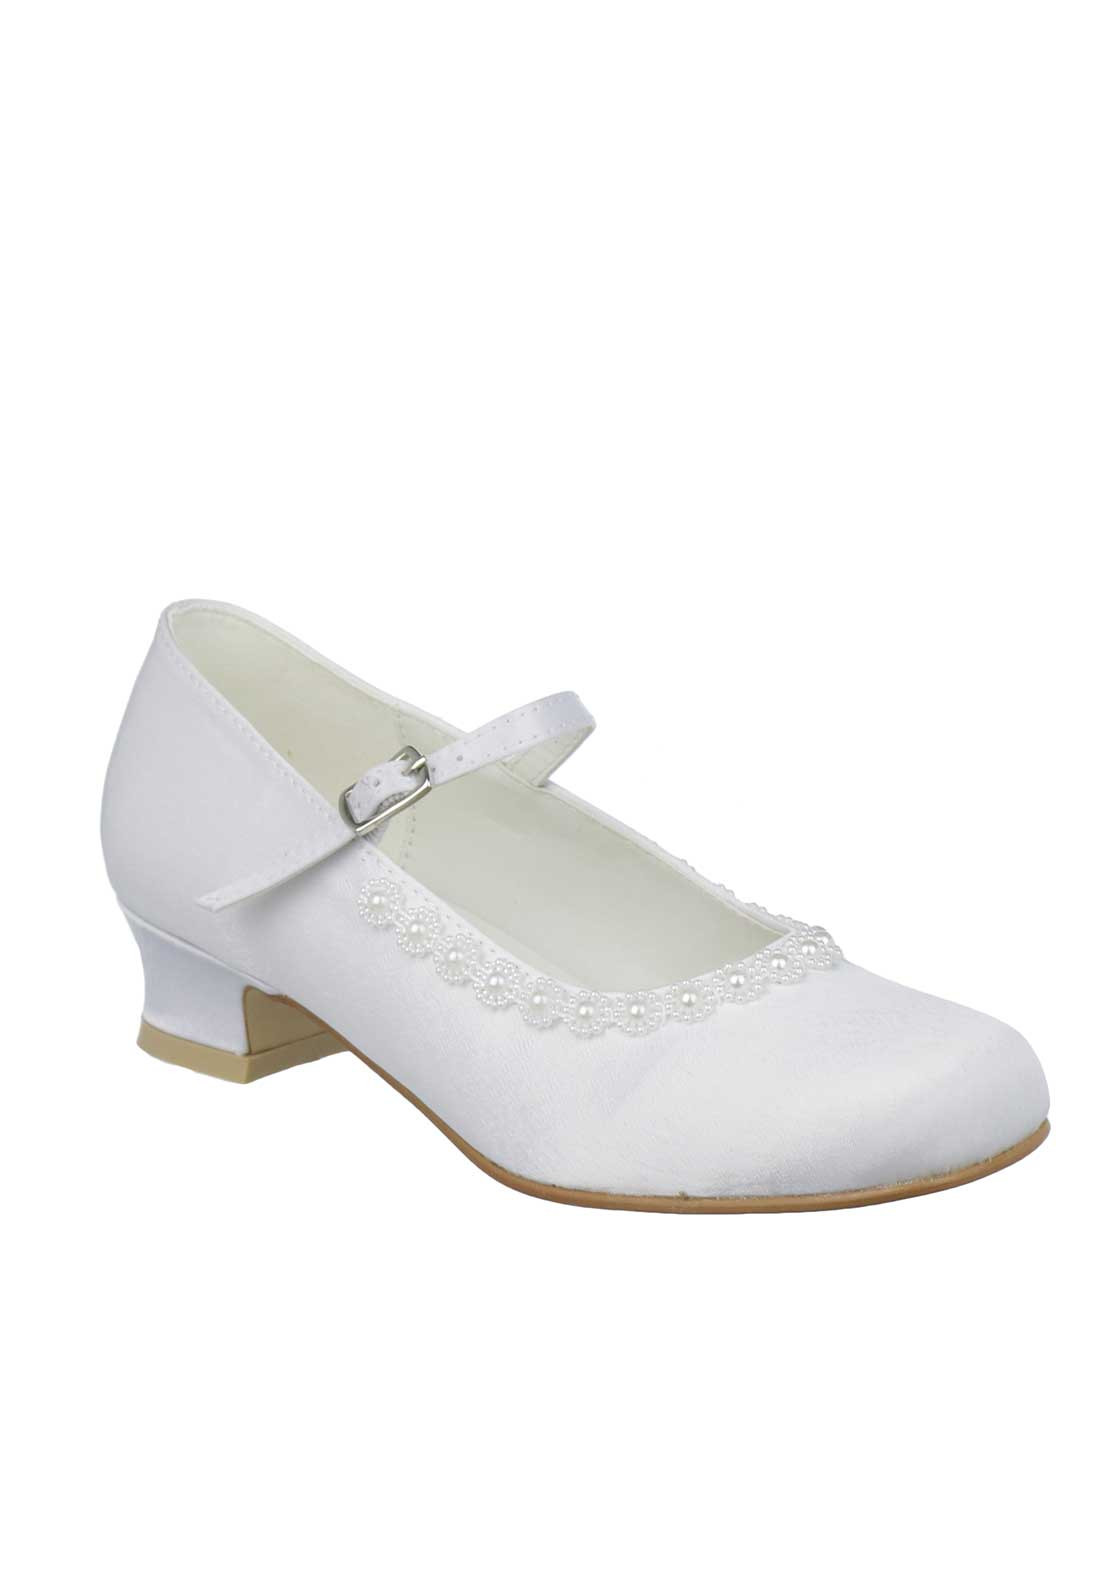 Little People Pearl Flower Satin Communion Shoes, White